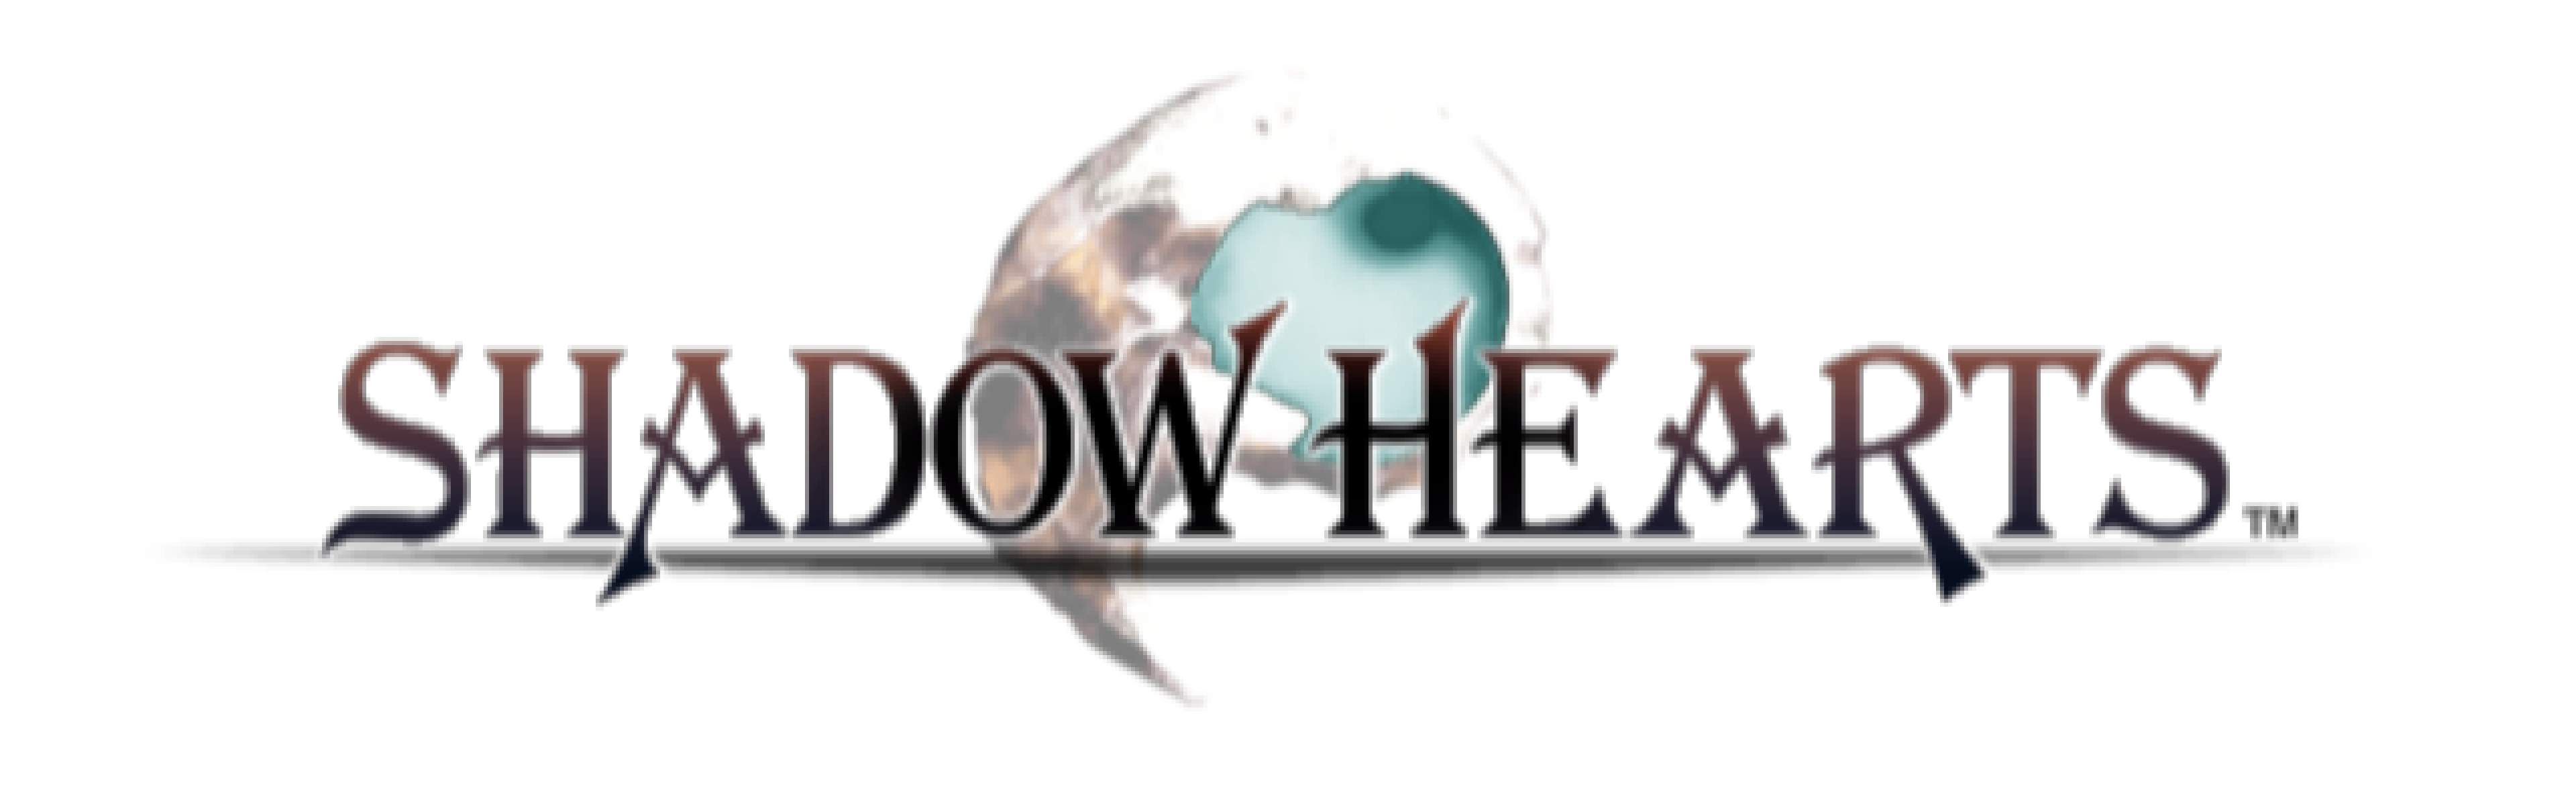 The title screen of Shadow Hearts.